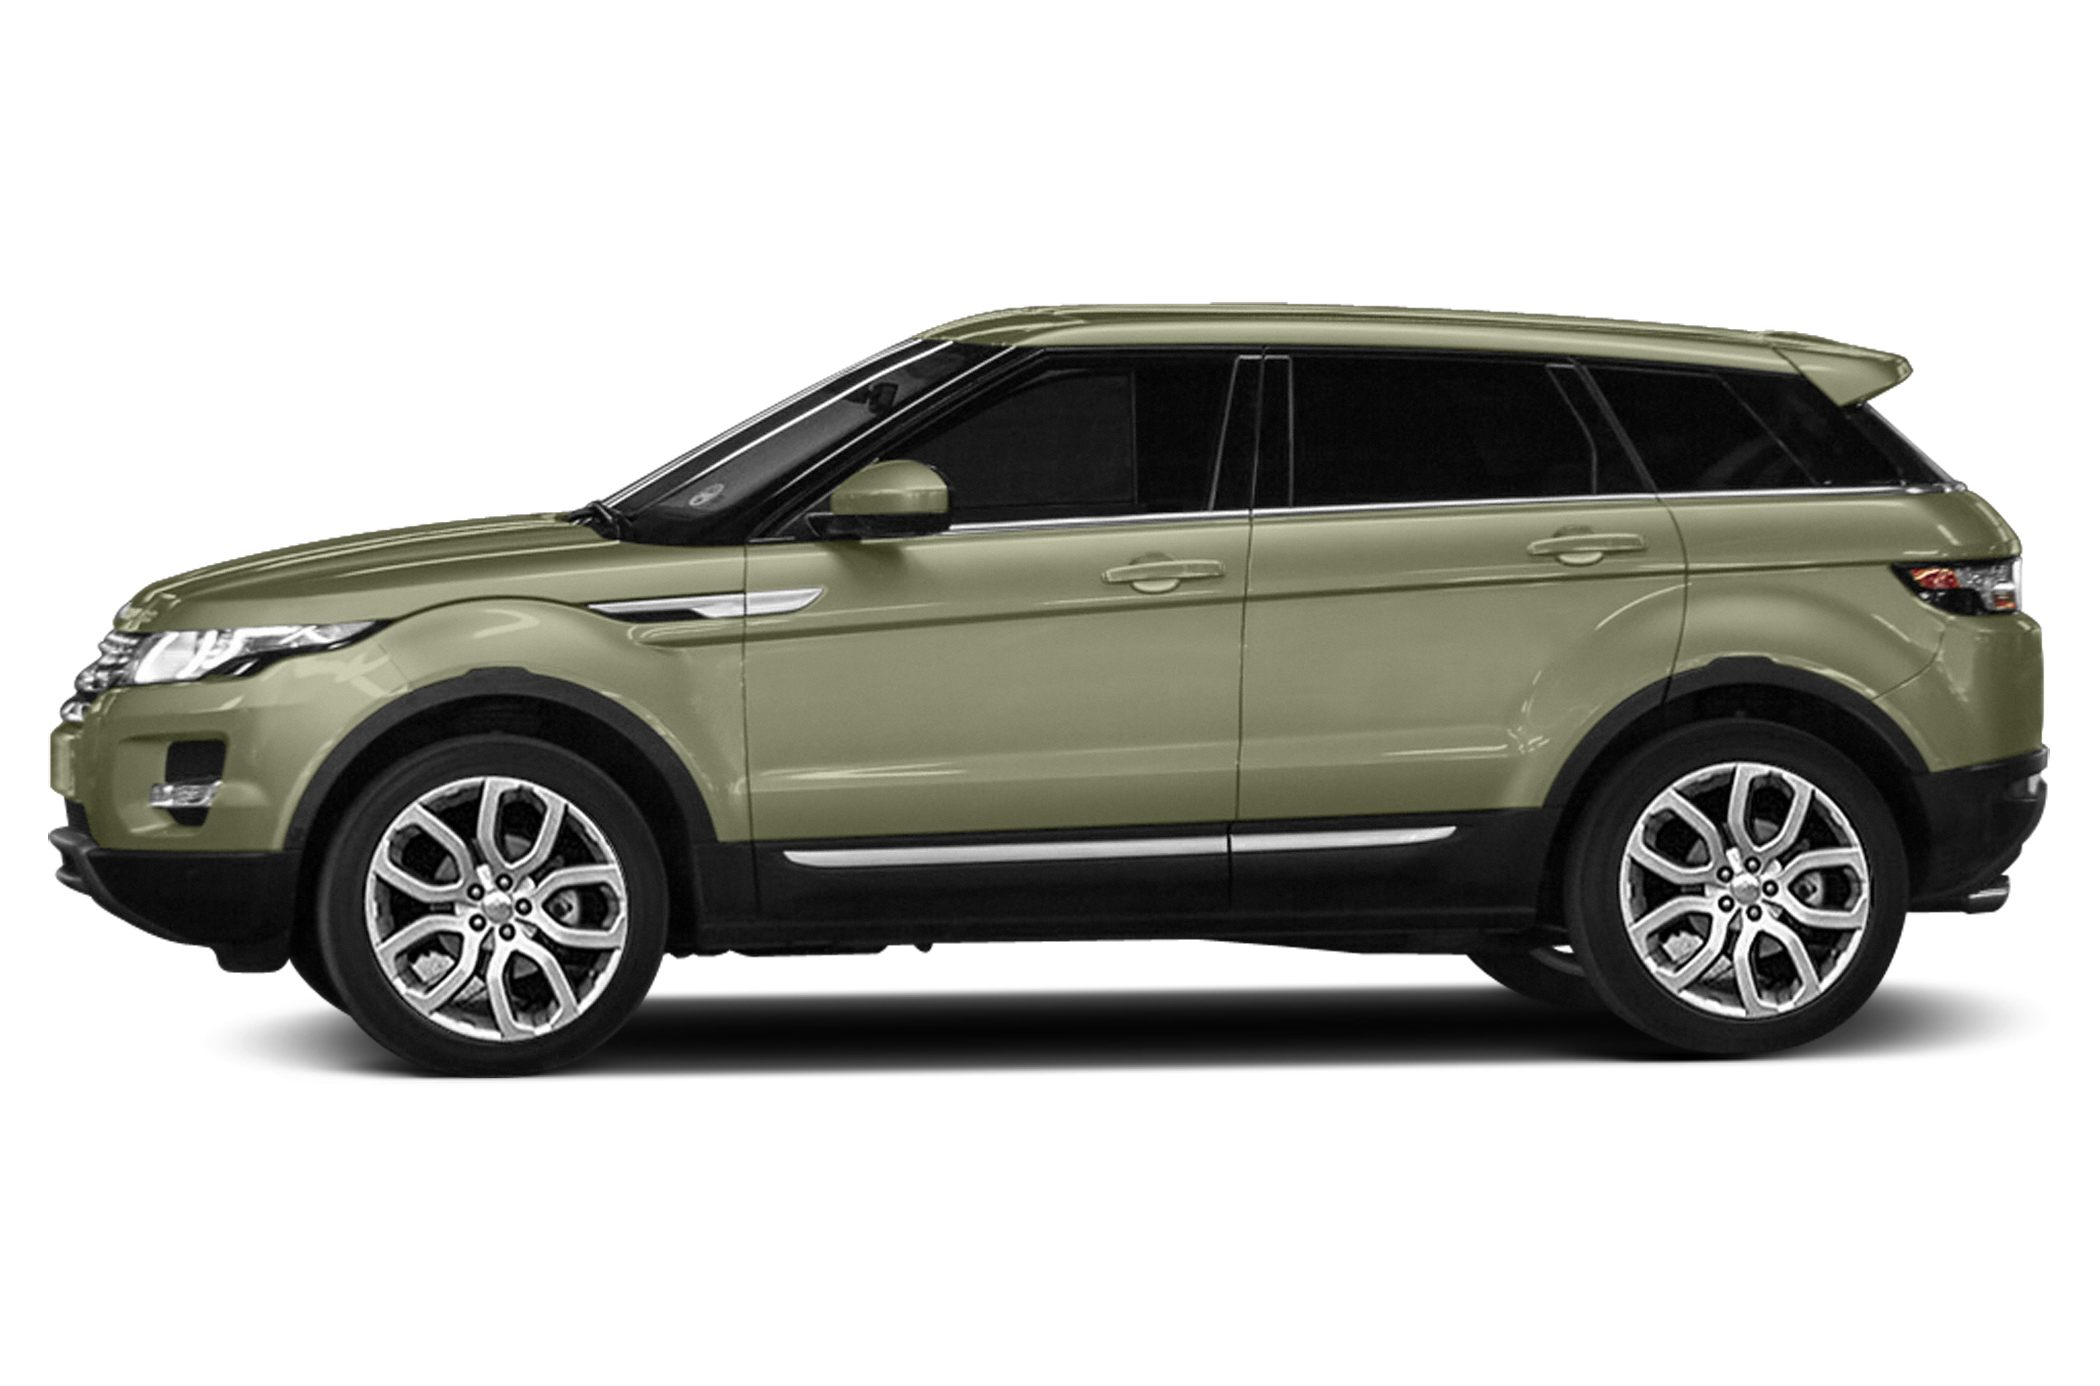 Шины и диски для Land Rover Evoque